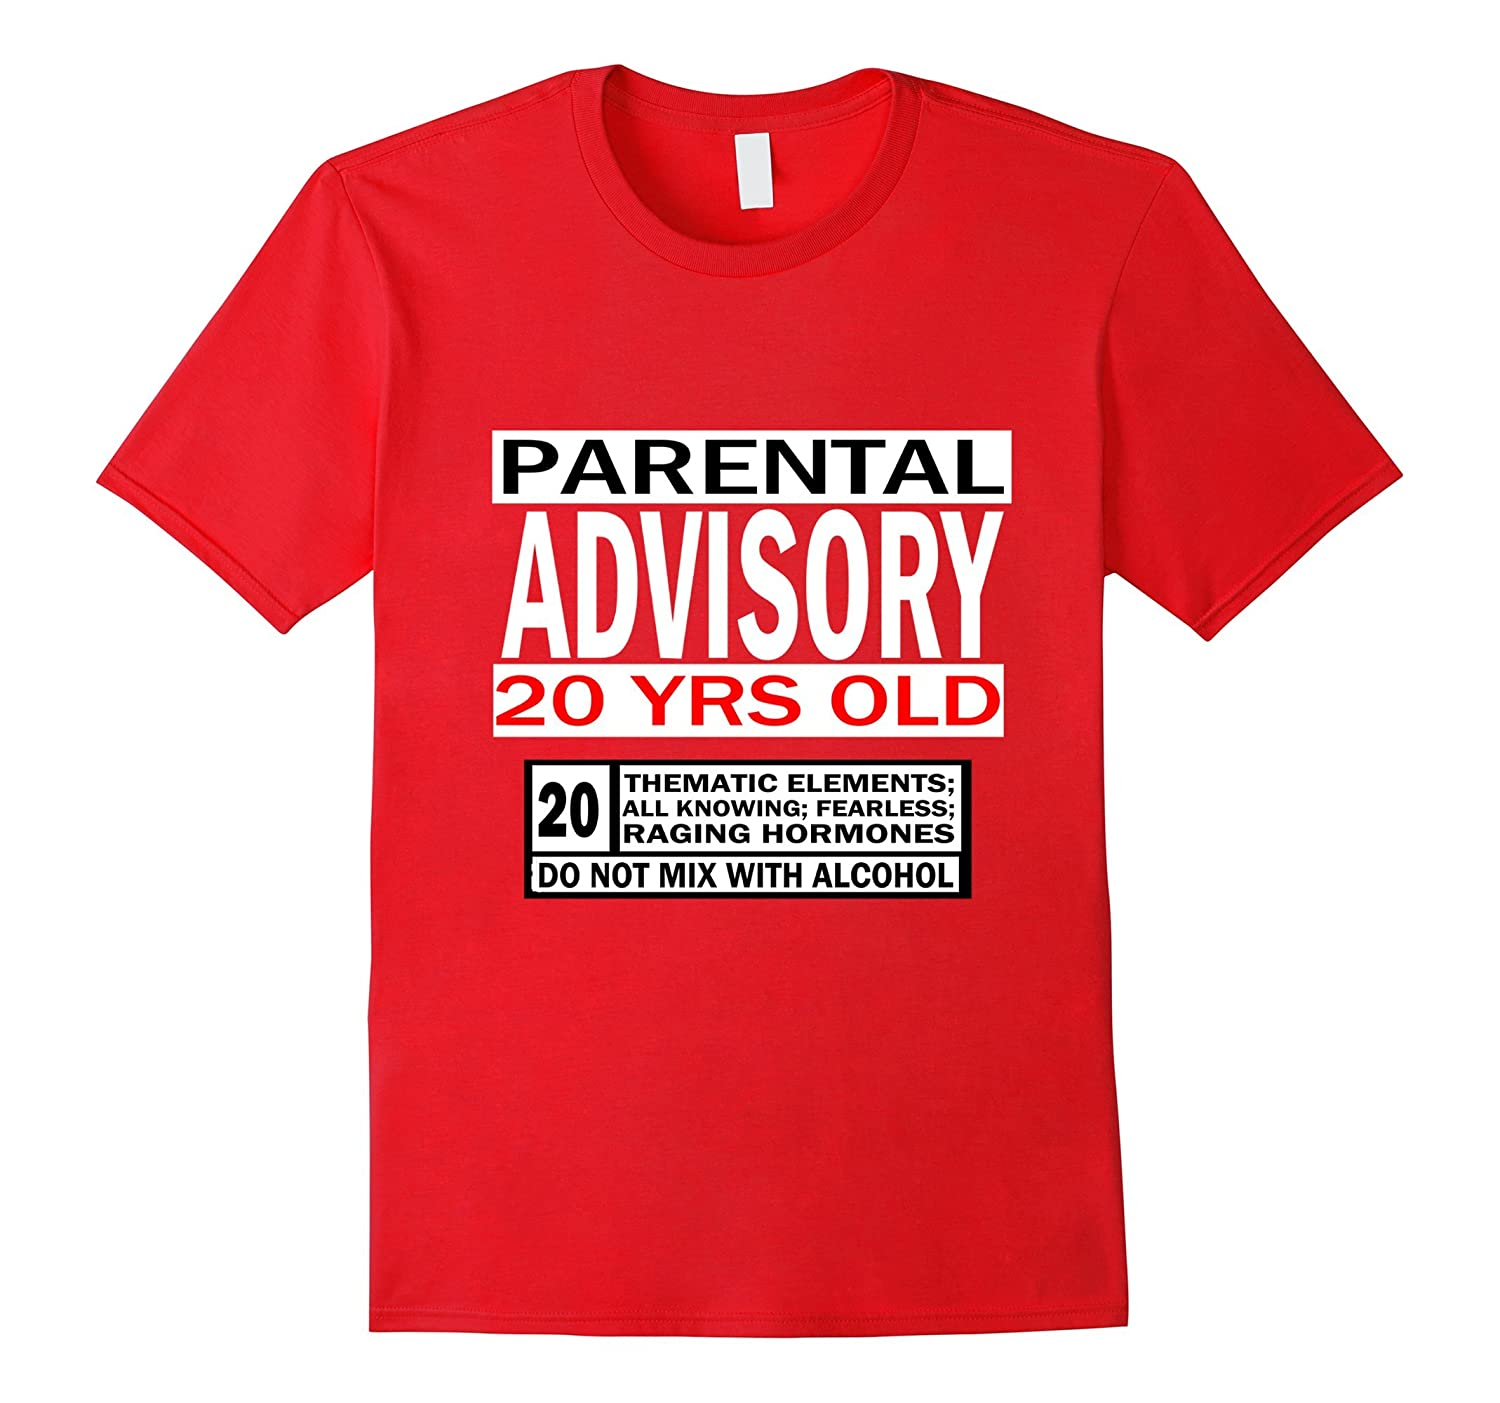 20 Year Old Birthday Shirt Gift Parental Warning Young Adult PL Polozatee